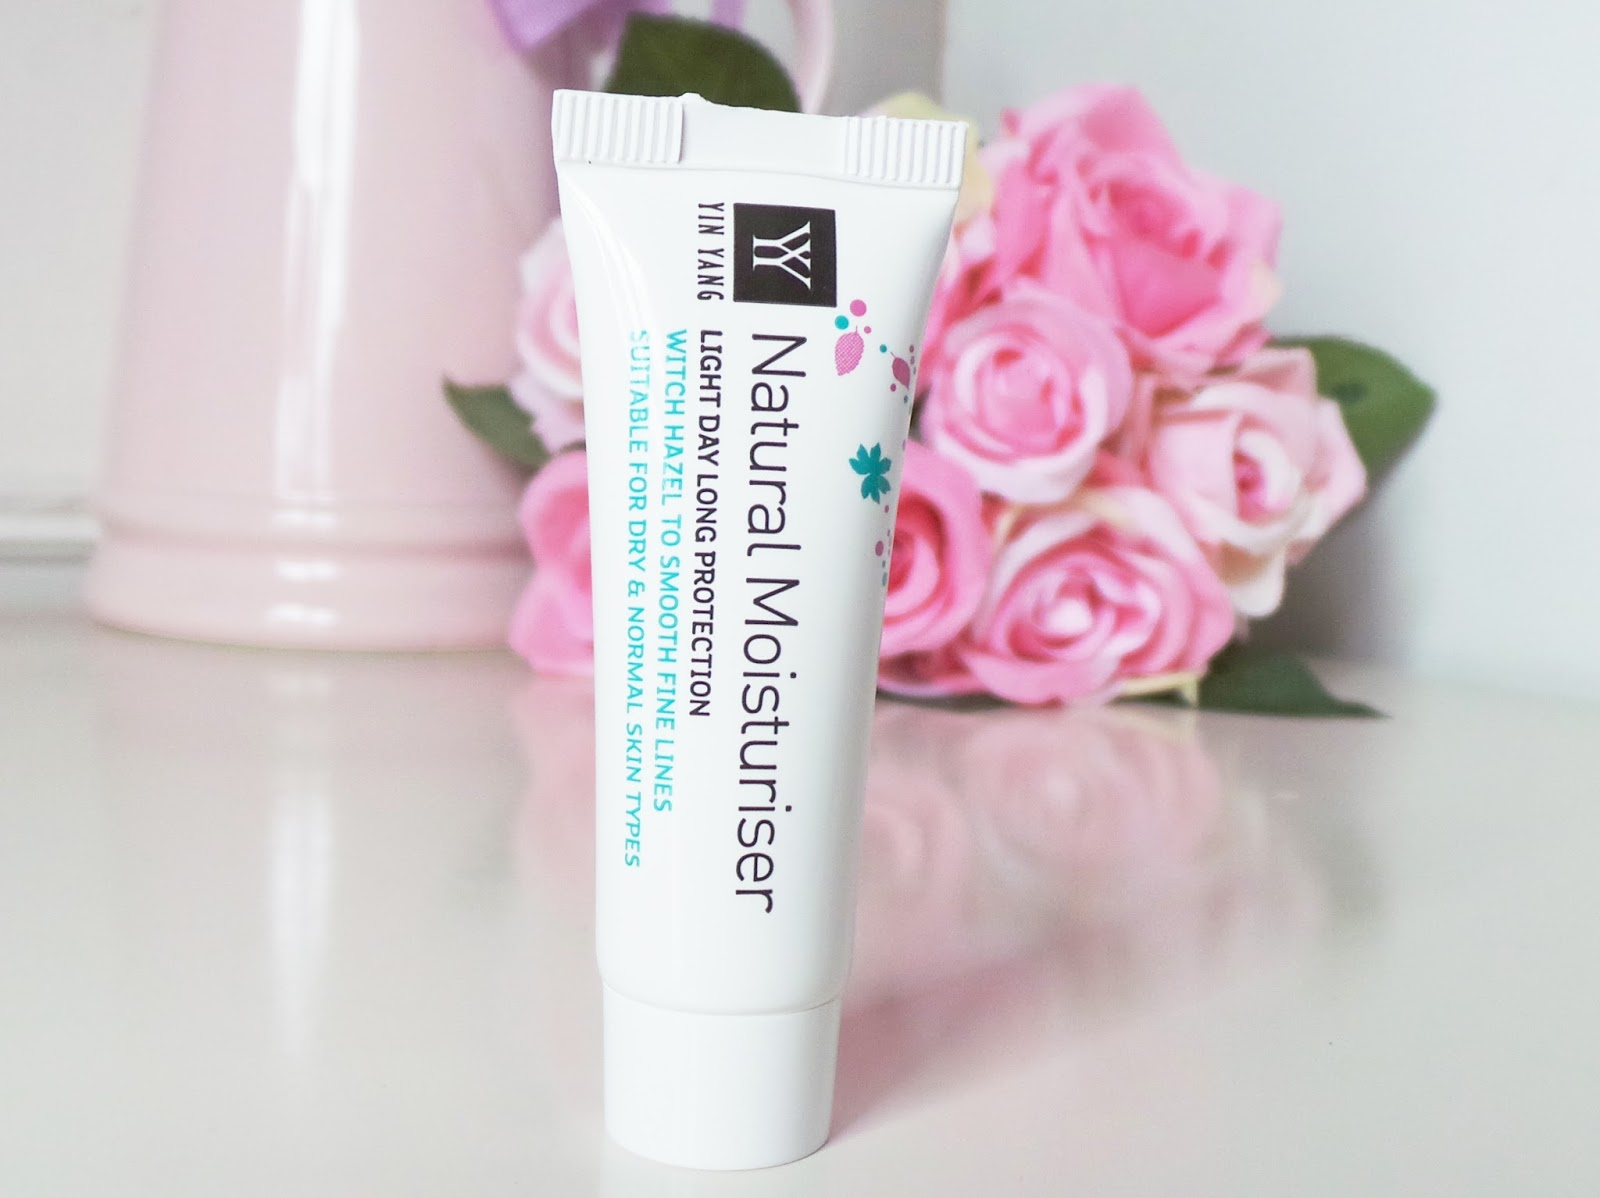 birchbox yin yang natural moisturiser beauty blog review